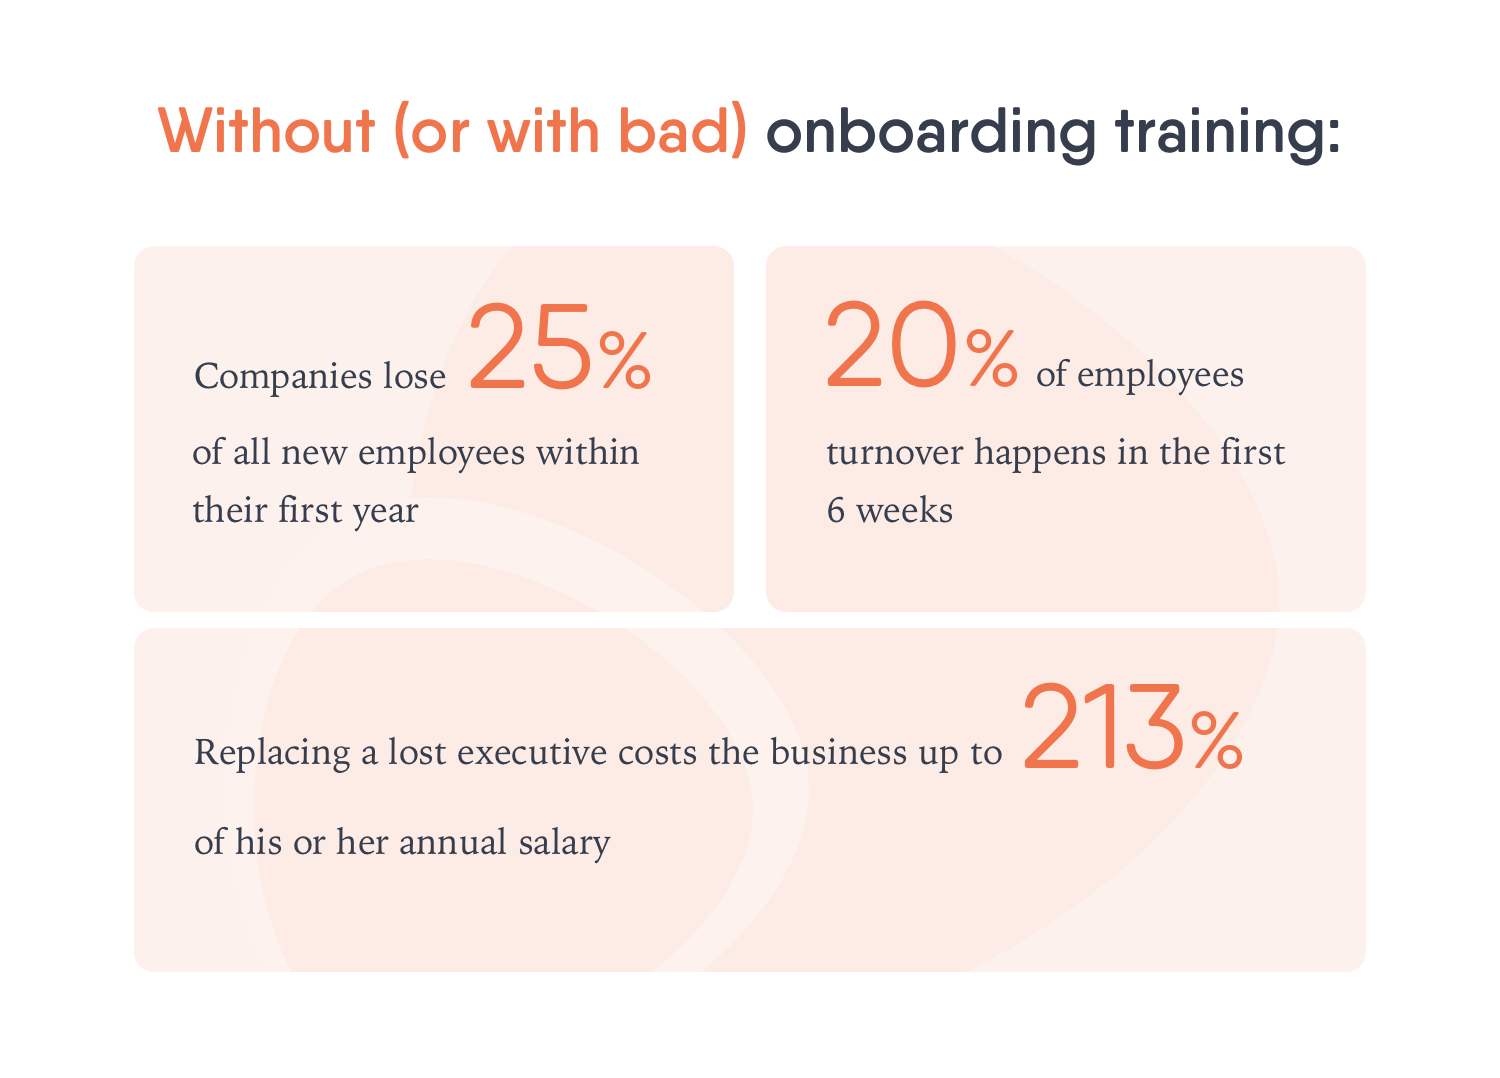 Bad onboarding stats